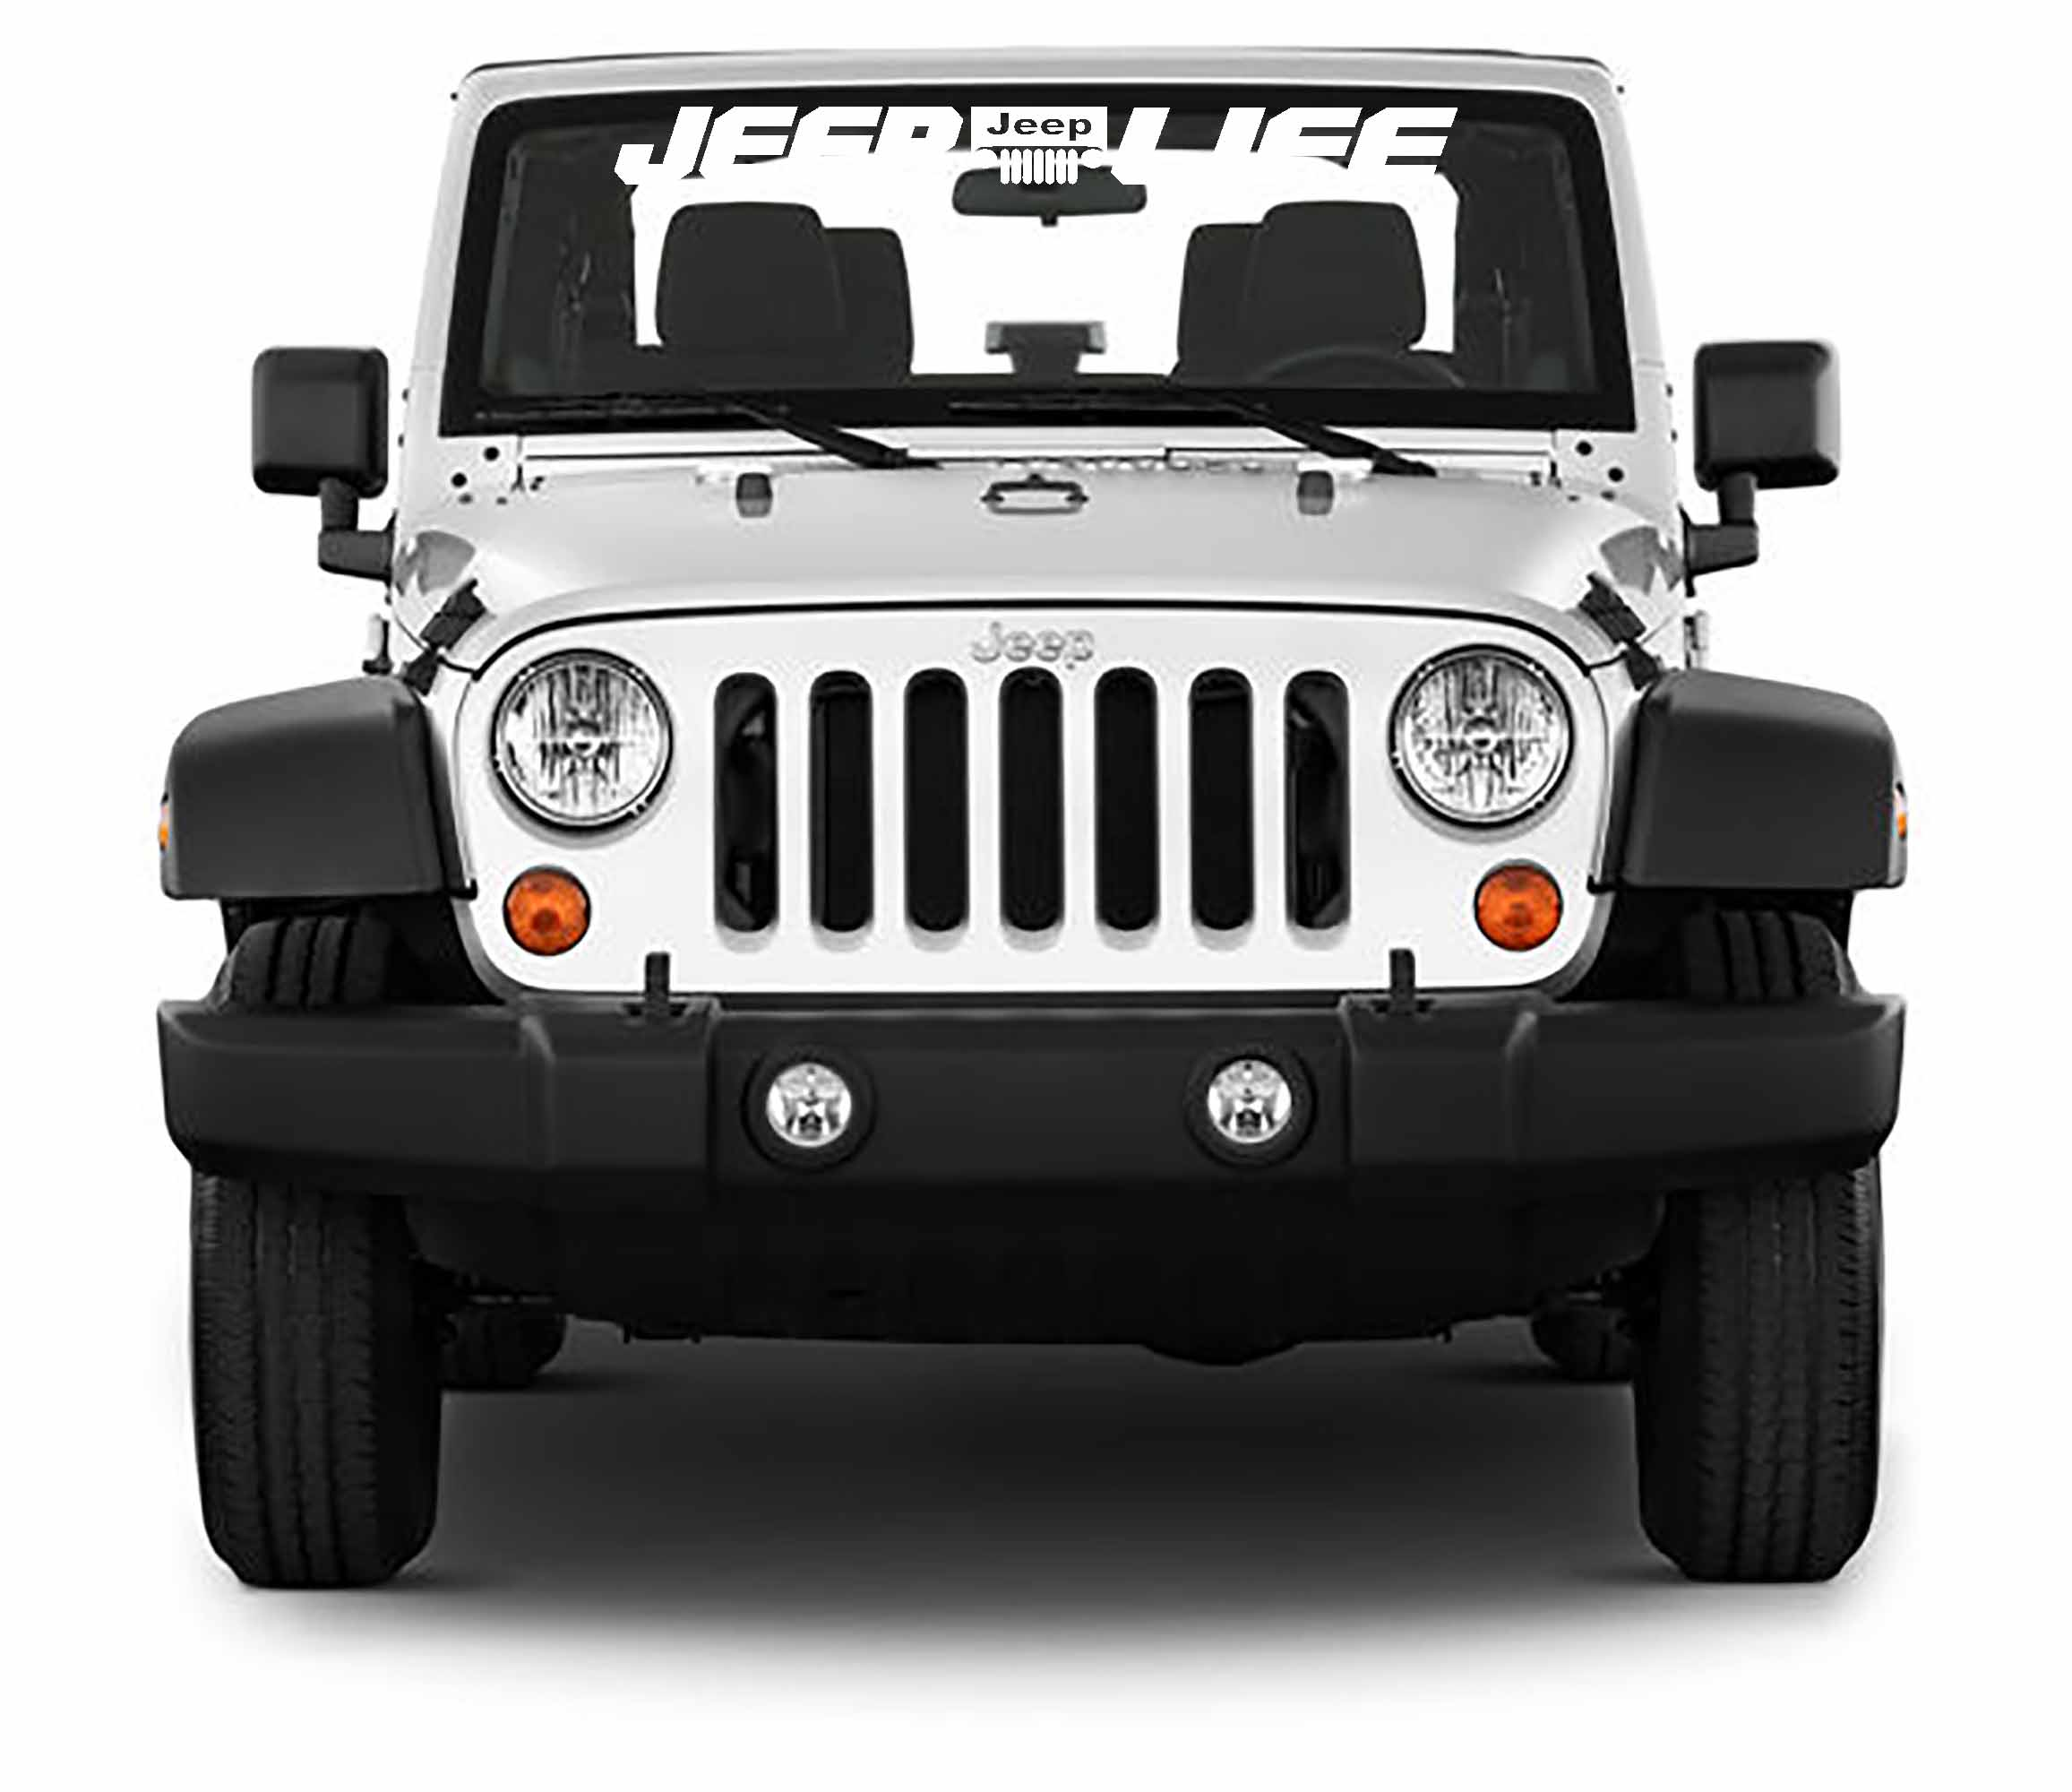 Jeep Life Windshield Banner Vinyl Decal Jeep Wrangler Decal